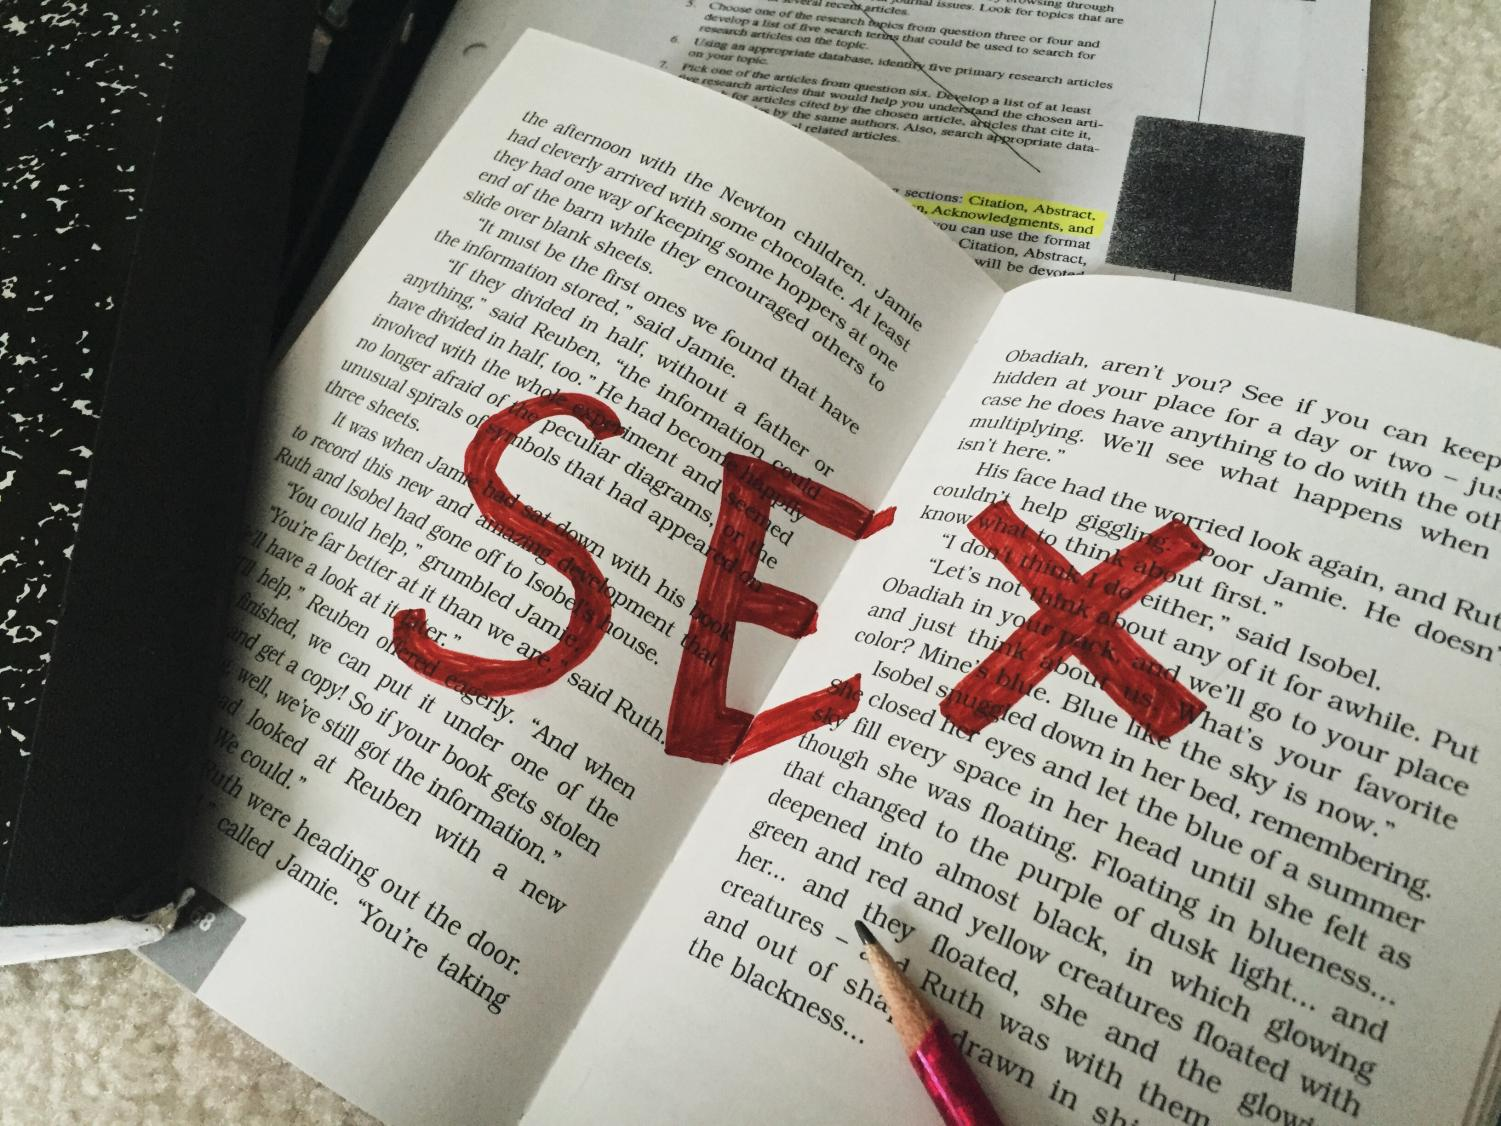 Information about how to do sex